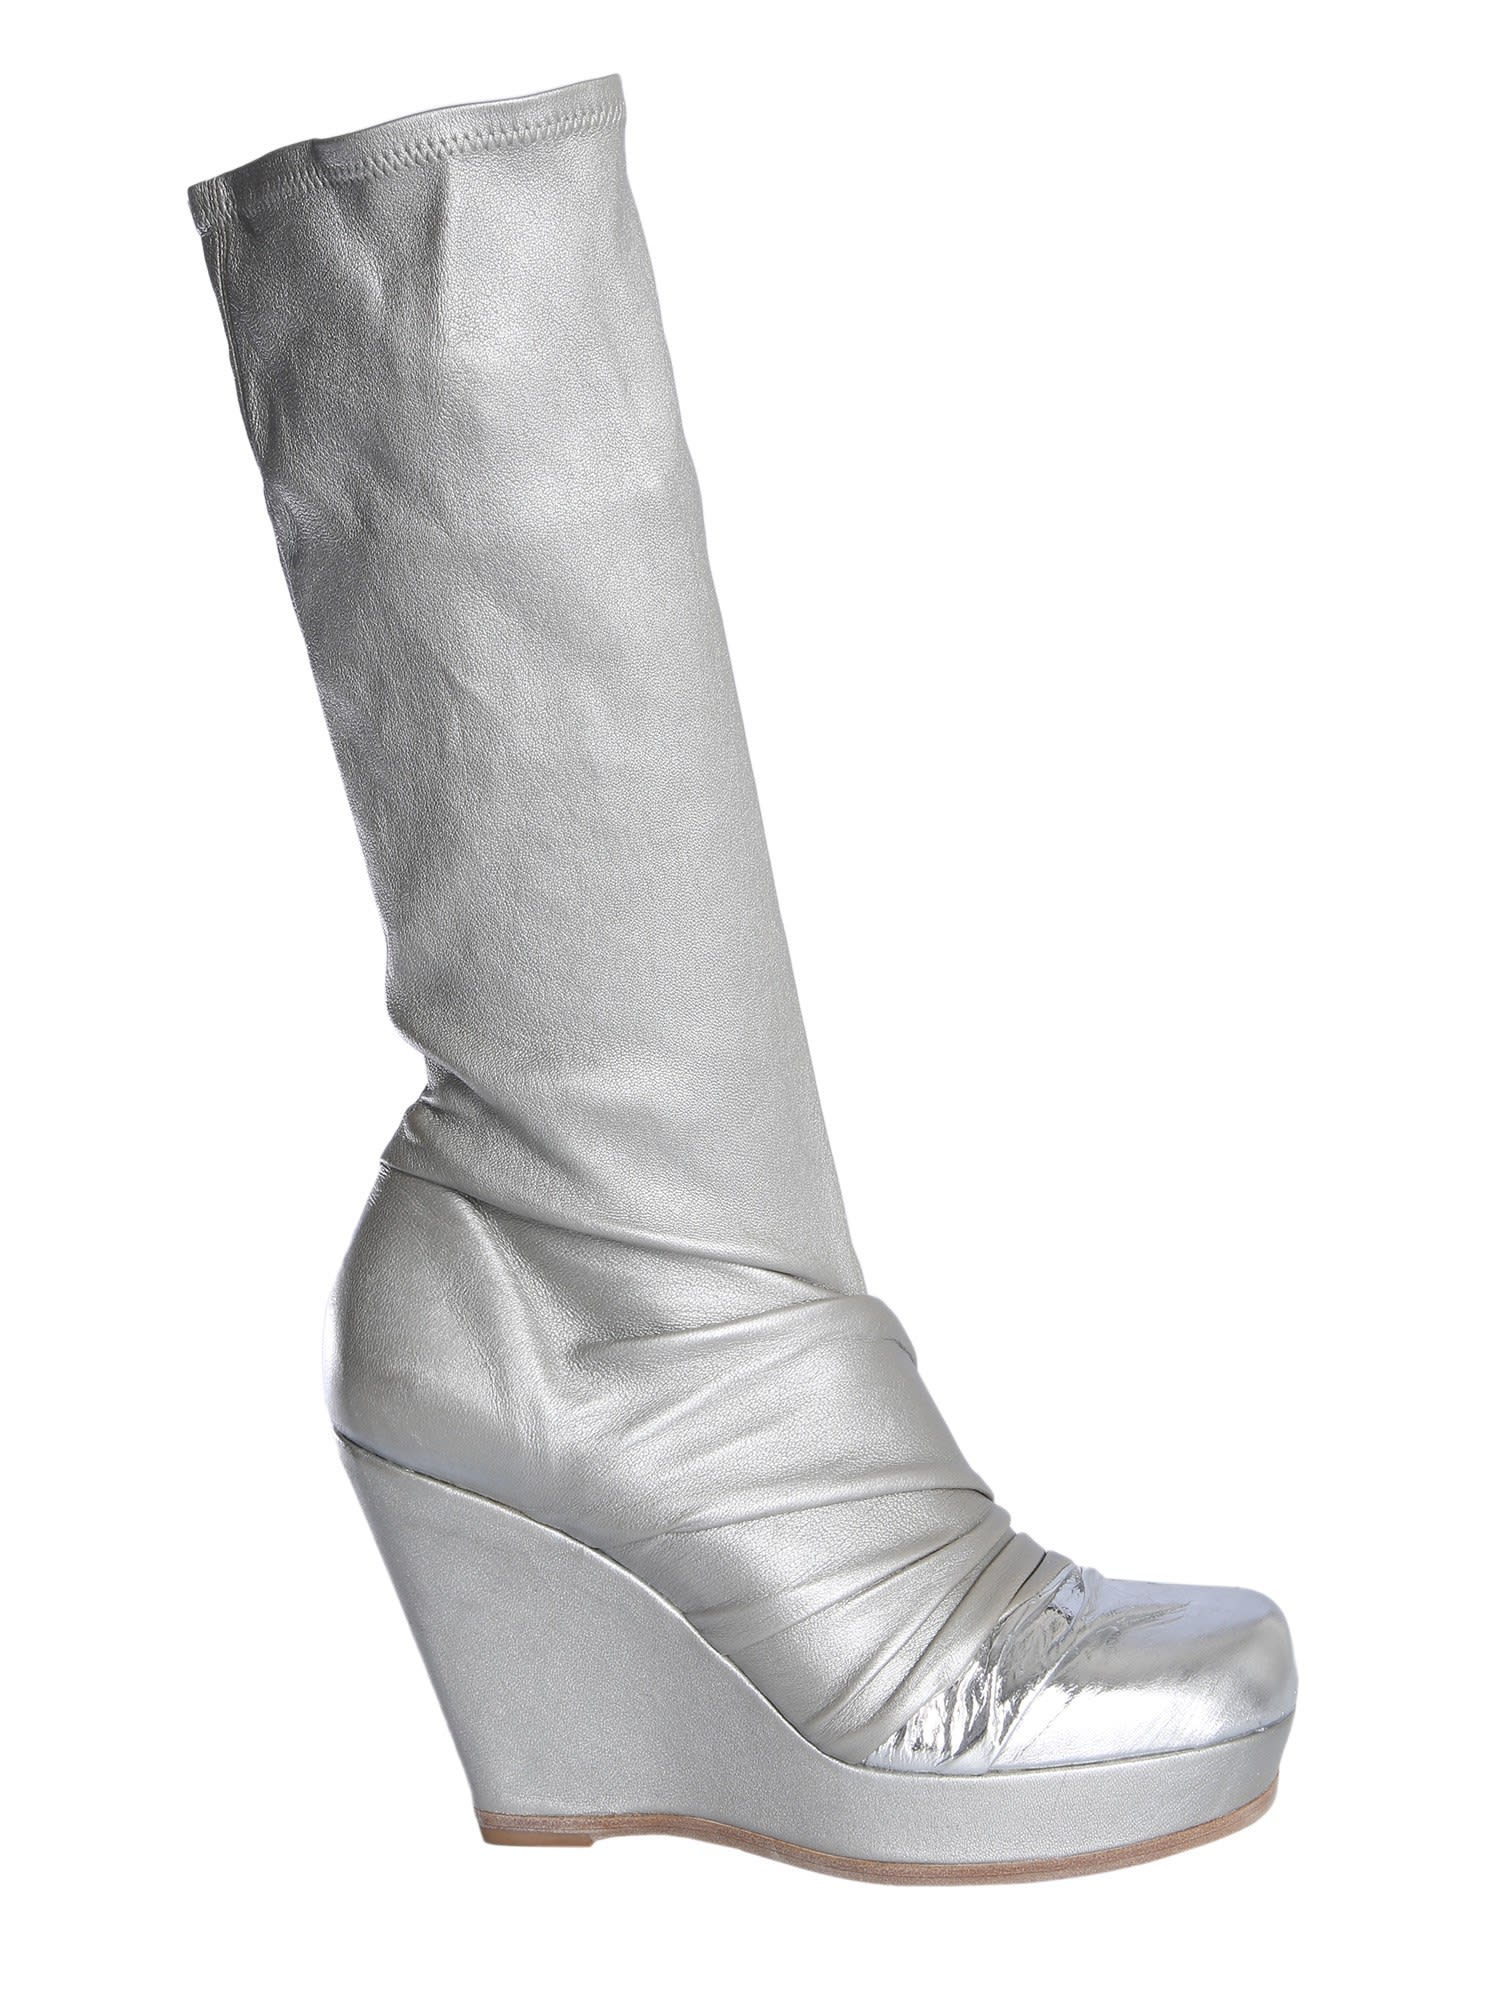 Buy Rick Owens Draped Boots online, shop Rick Owens shoes with free shipping